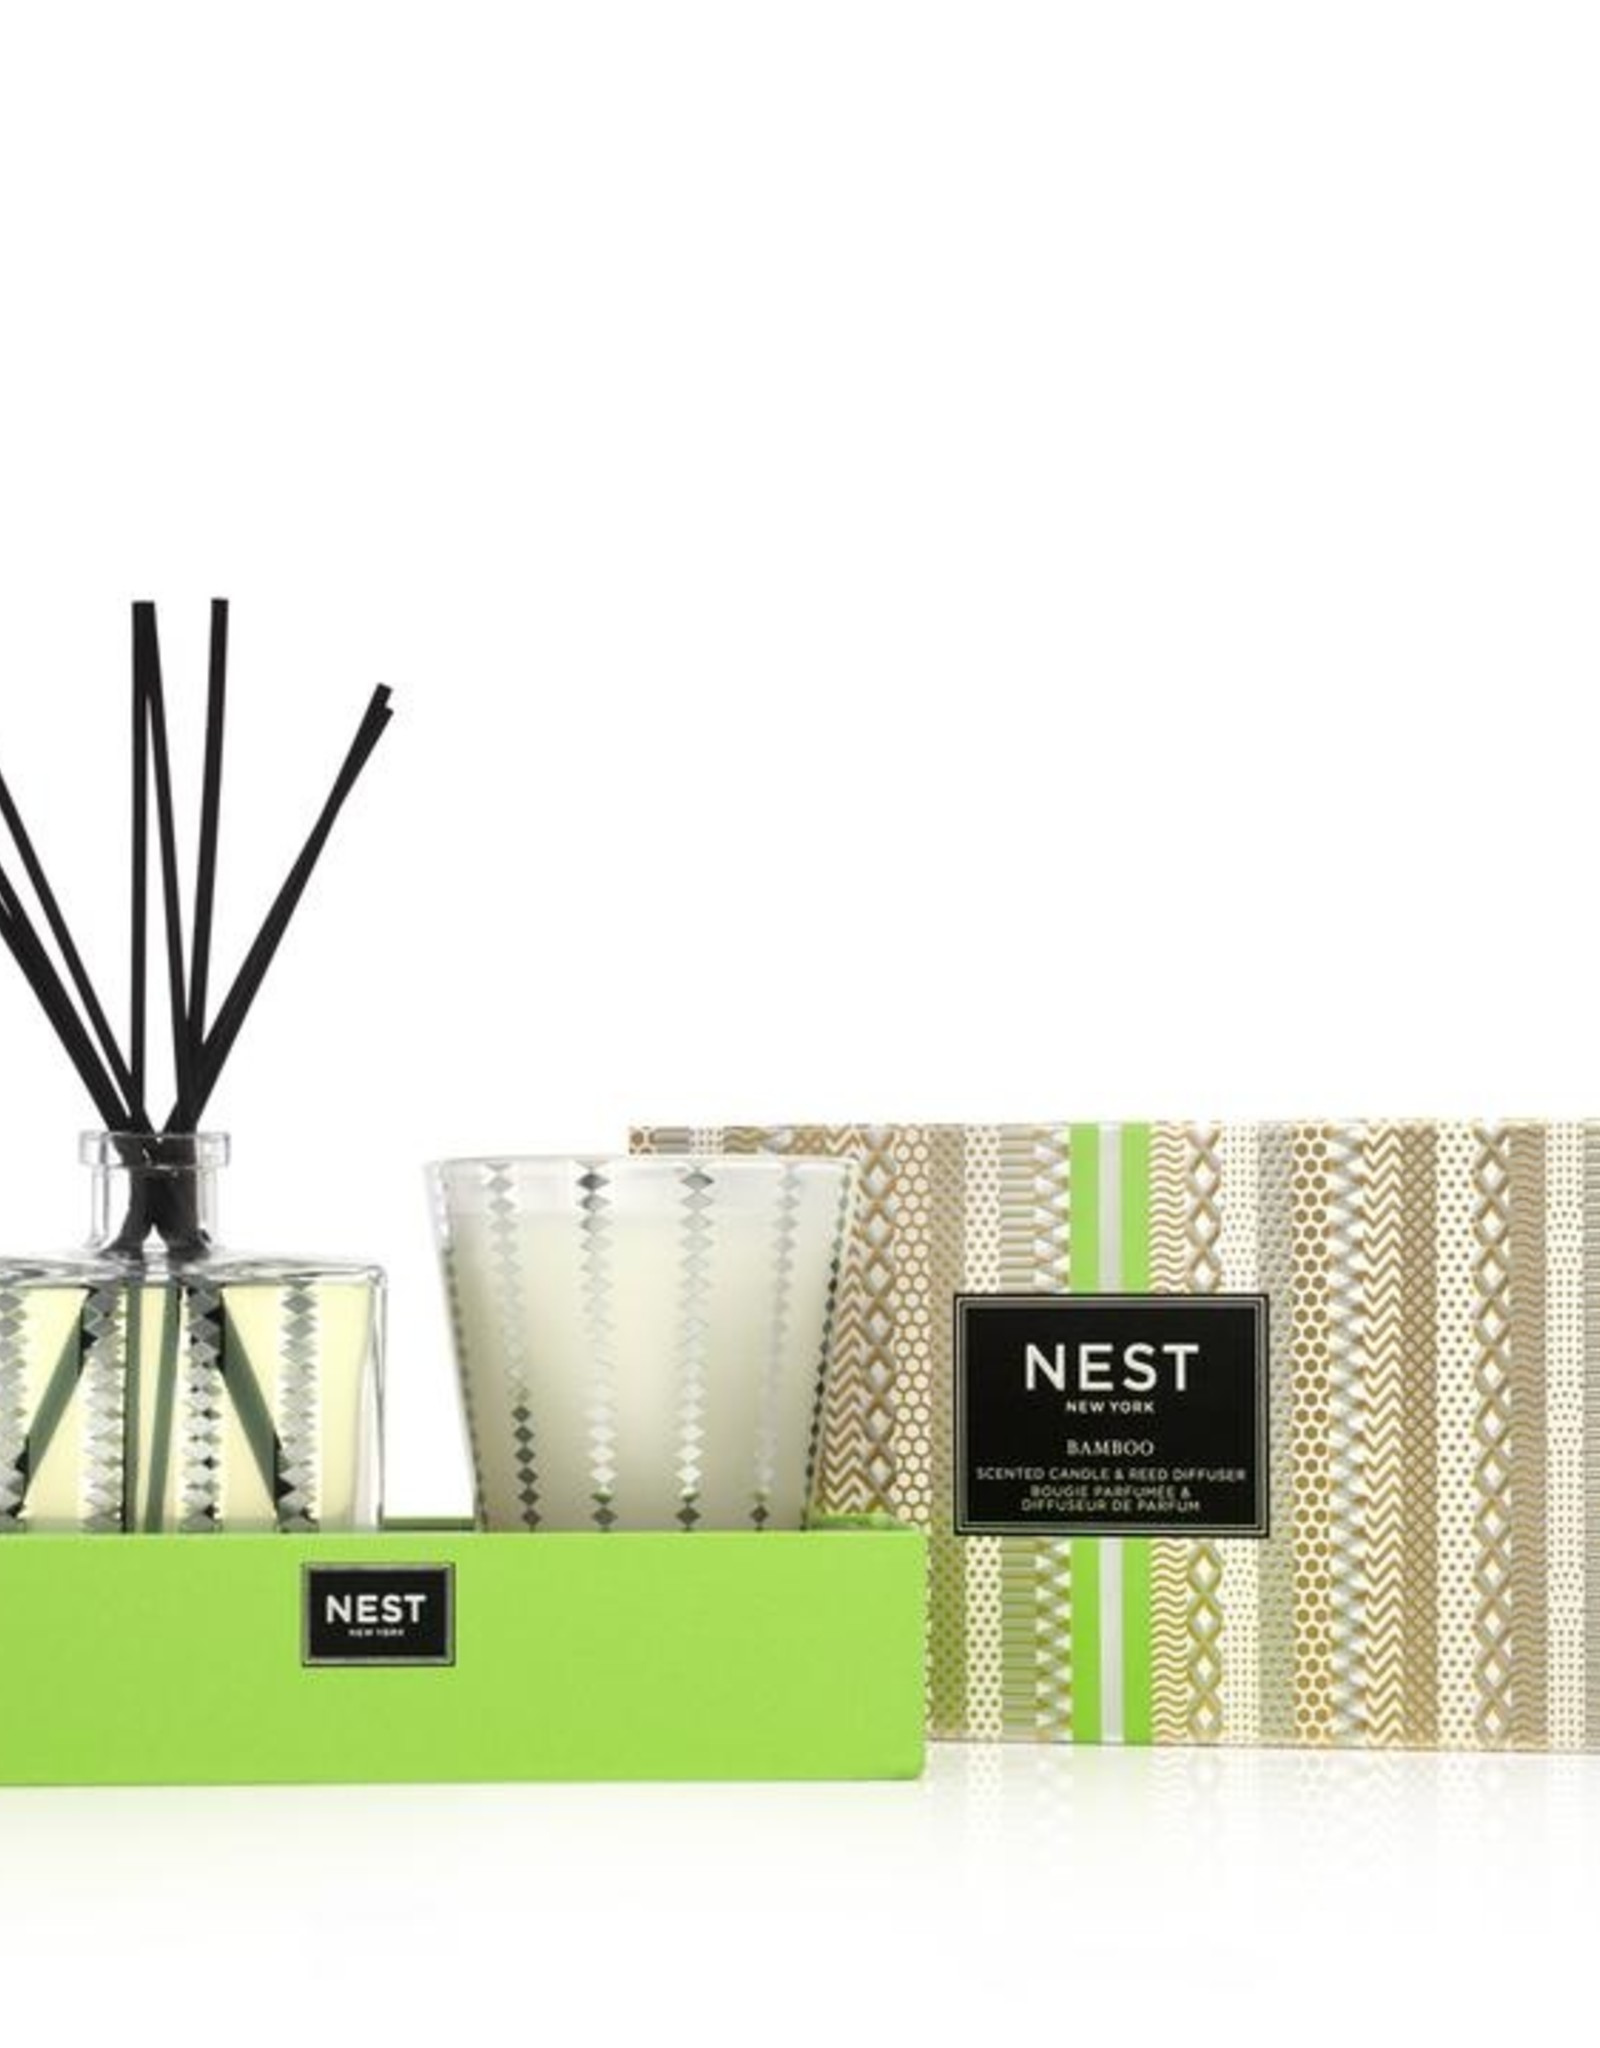 NEST NEW YORK Bamboo Candle and Diffuser Set